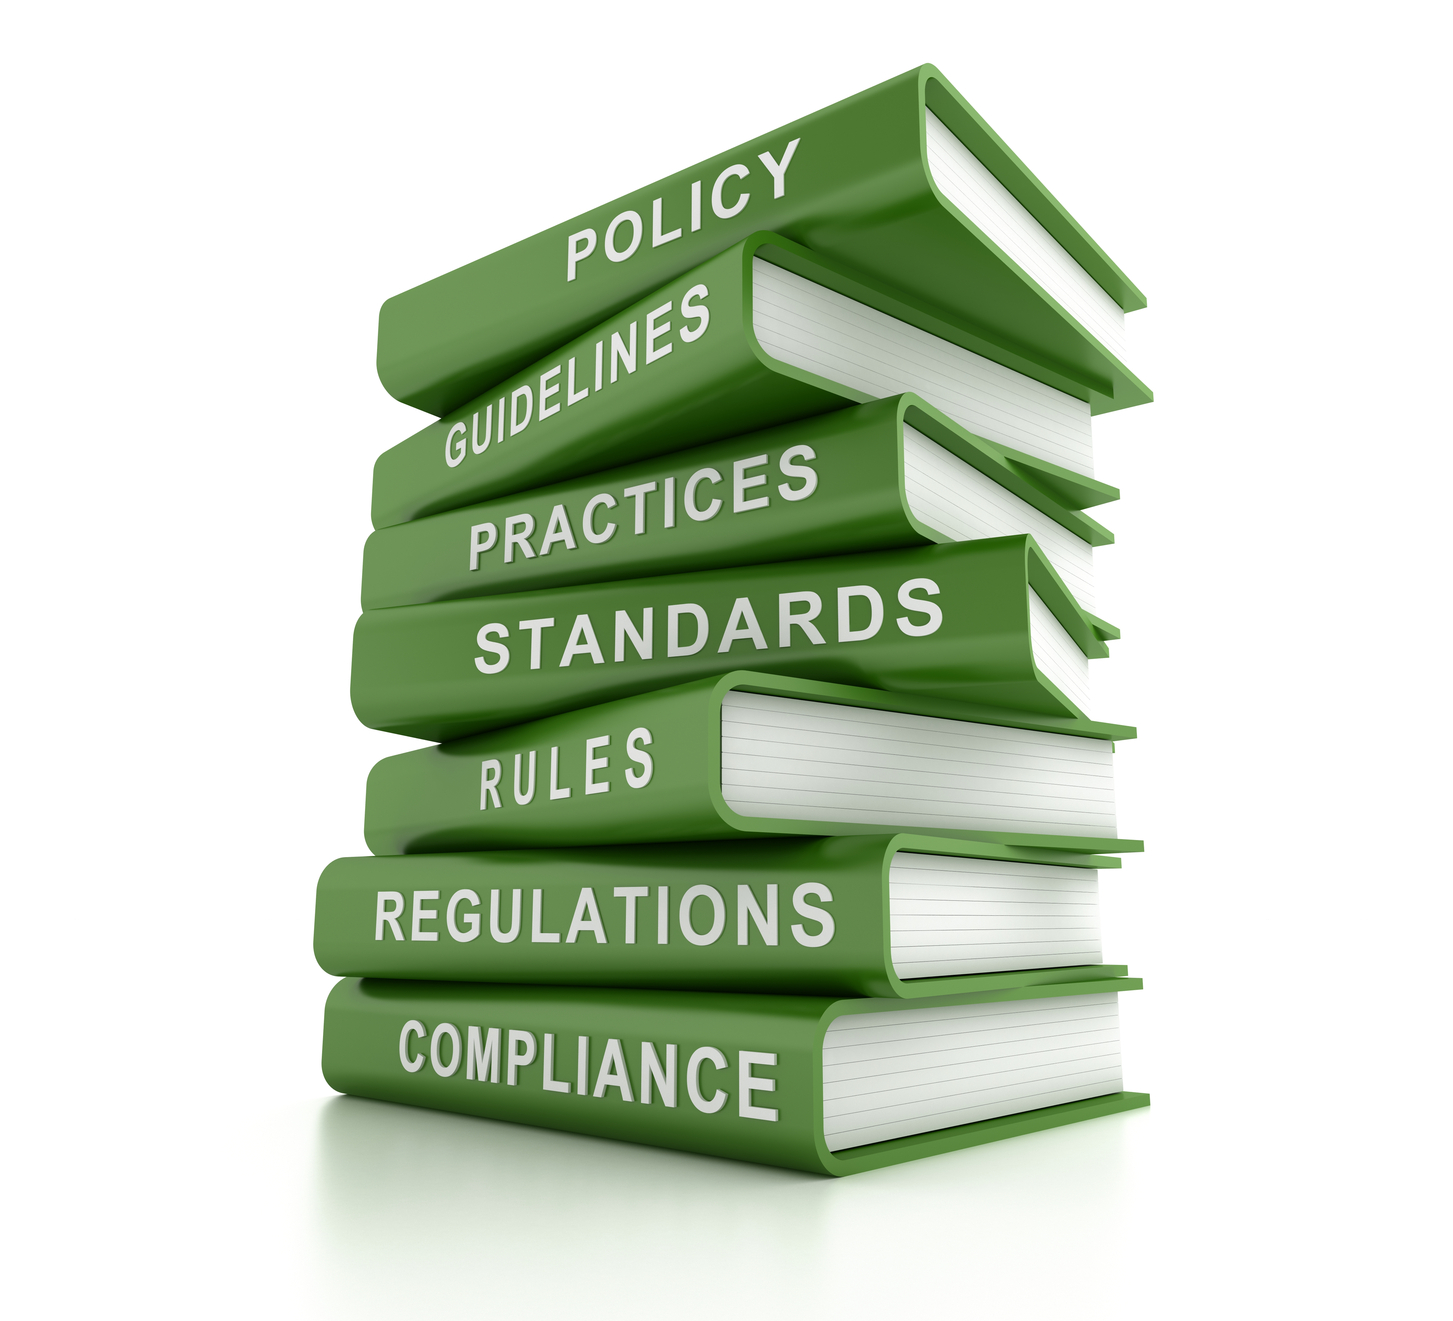 stack-of-green-compliance-and-rules-books-000035976998-medium.jpg